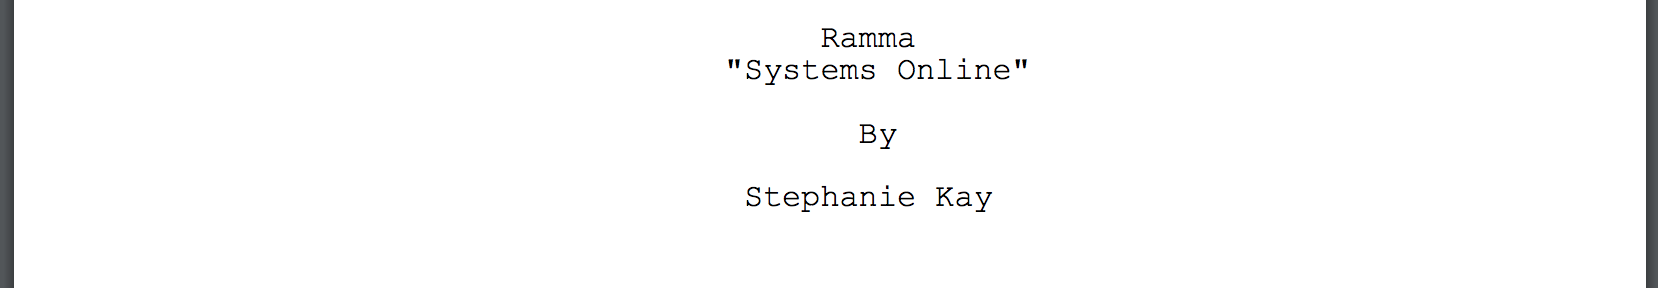 /sci-fi /comedy - Planet Ramma is a virtually identical planet to Earth minus a few differences, such as acid rain, the Rammadian flu, there are no cows, Givenchy is a type of orange juice, and more. Join a confident group of misfit geniuses as they attempt to contact other planets, soon to realize that Earth and Ramma are eerily similar and, if all goes well, will hopefully meet face to face in this TV series.